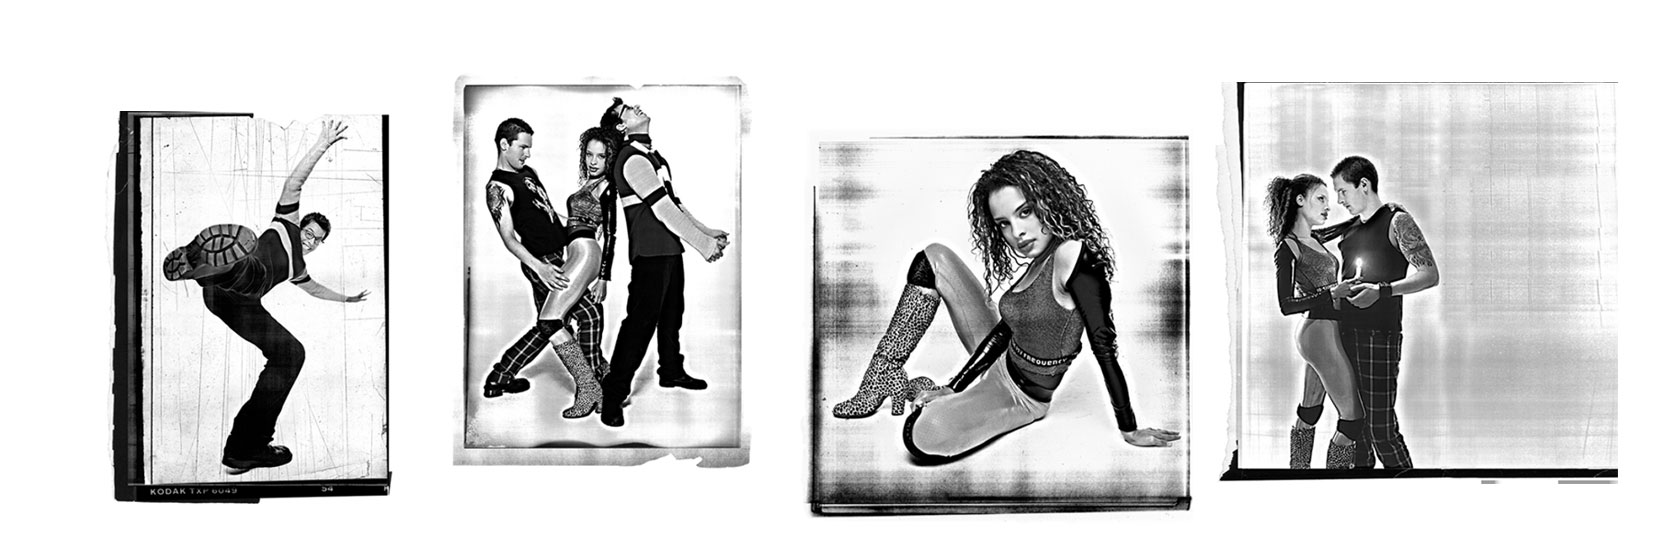 Thumbnail image for RENT 20th anniversary tour comes to  Bass Hall Oct. 17-22! blog post